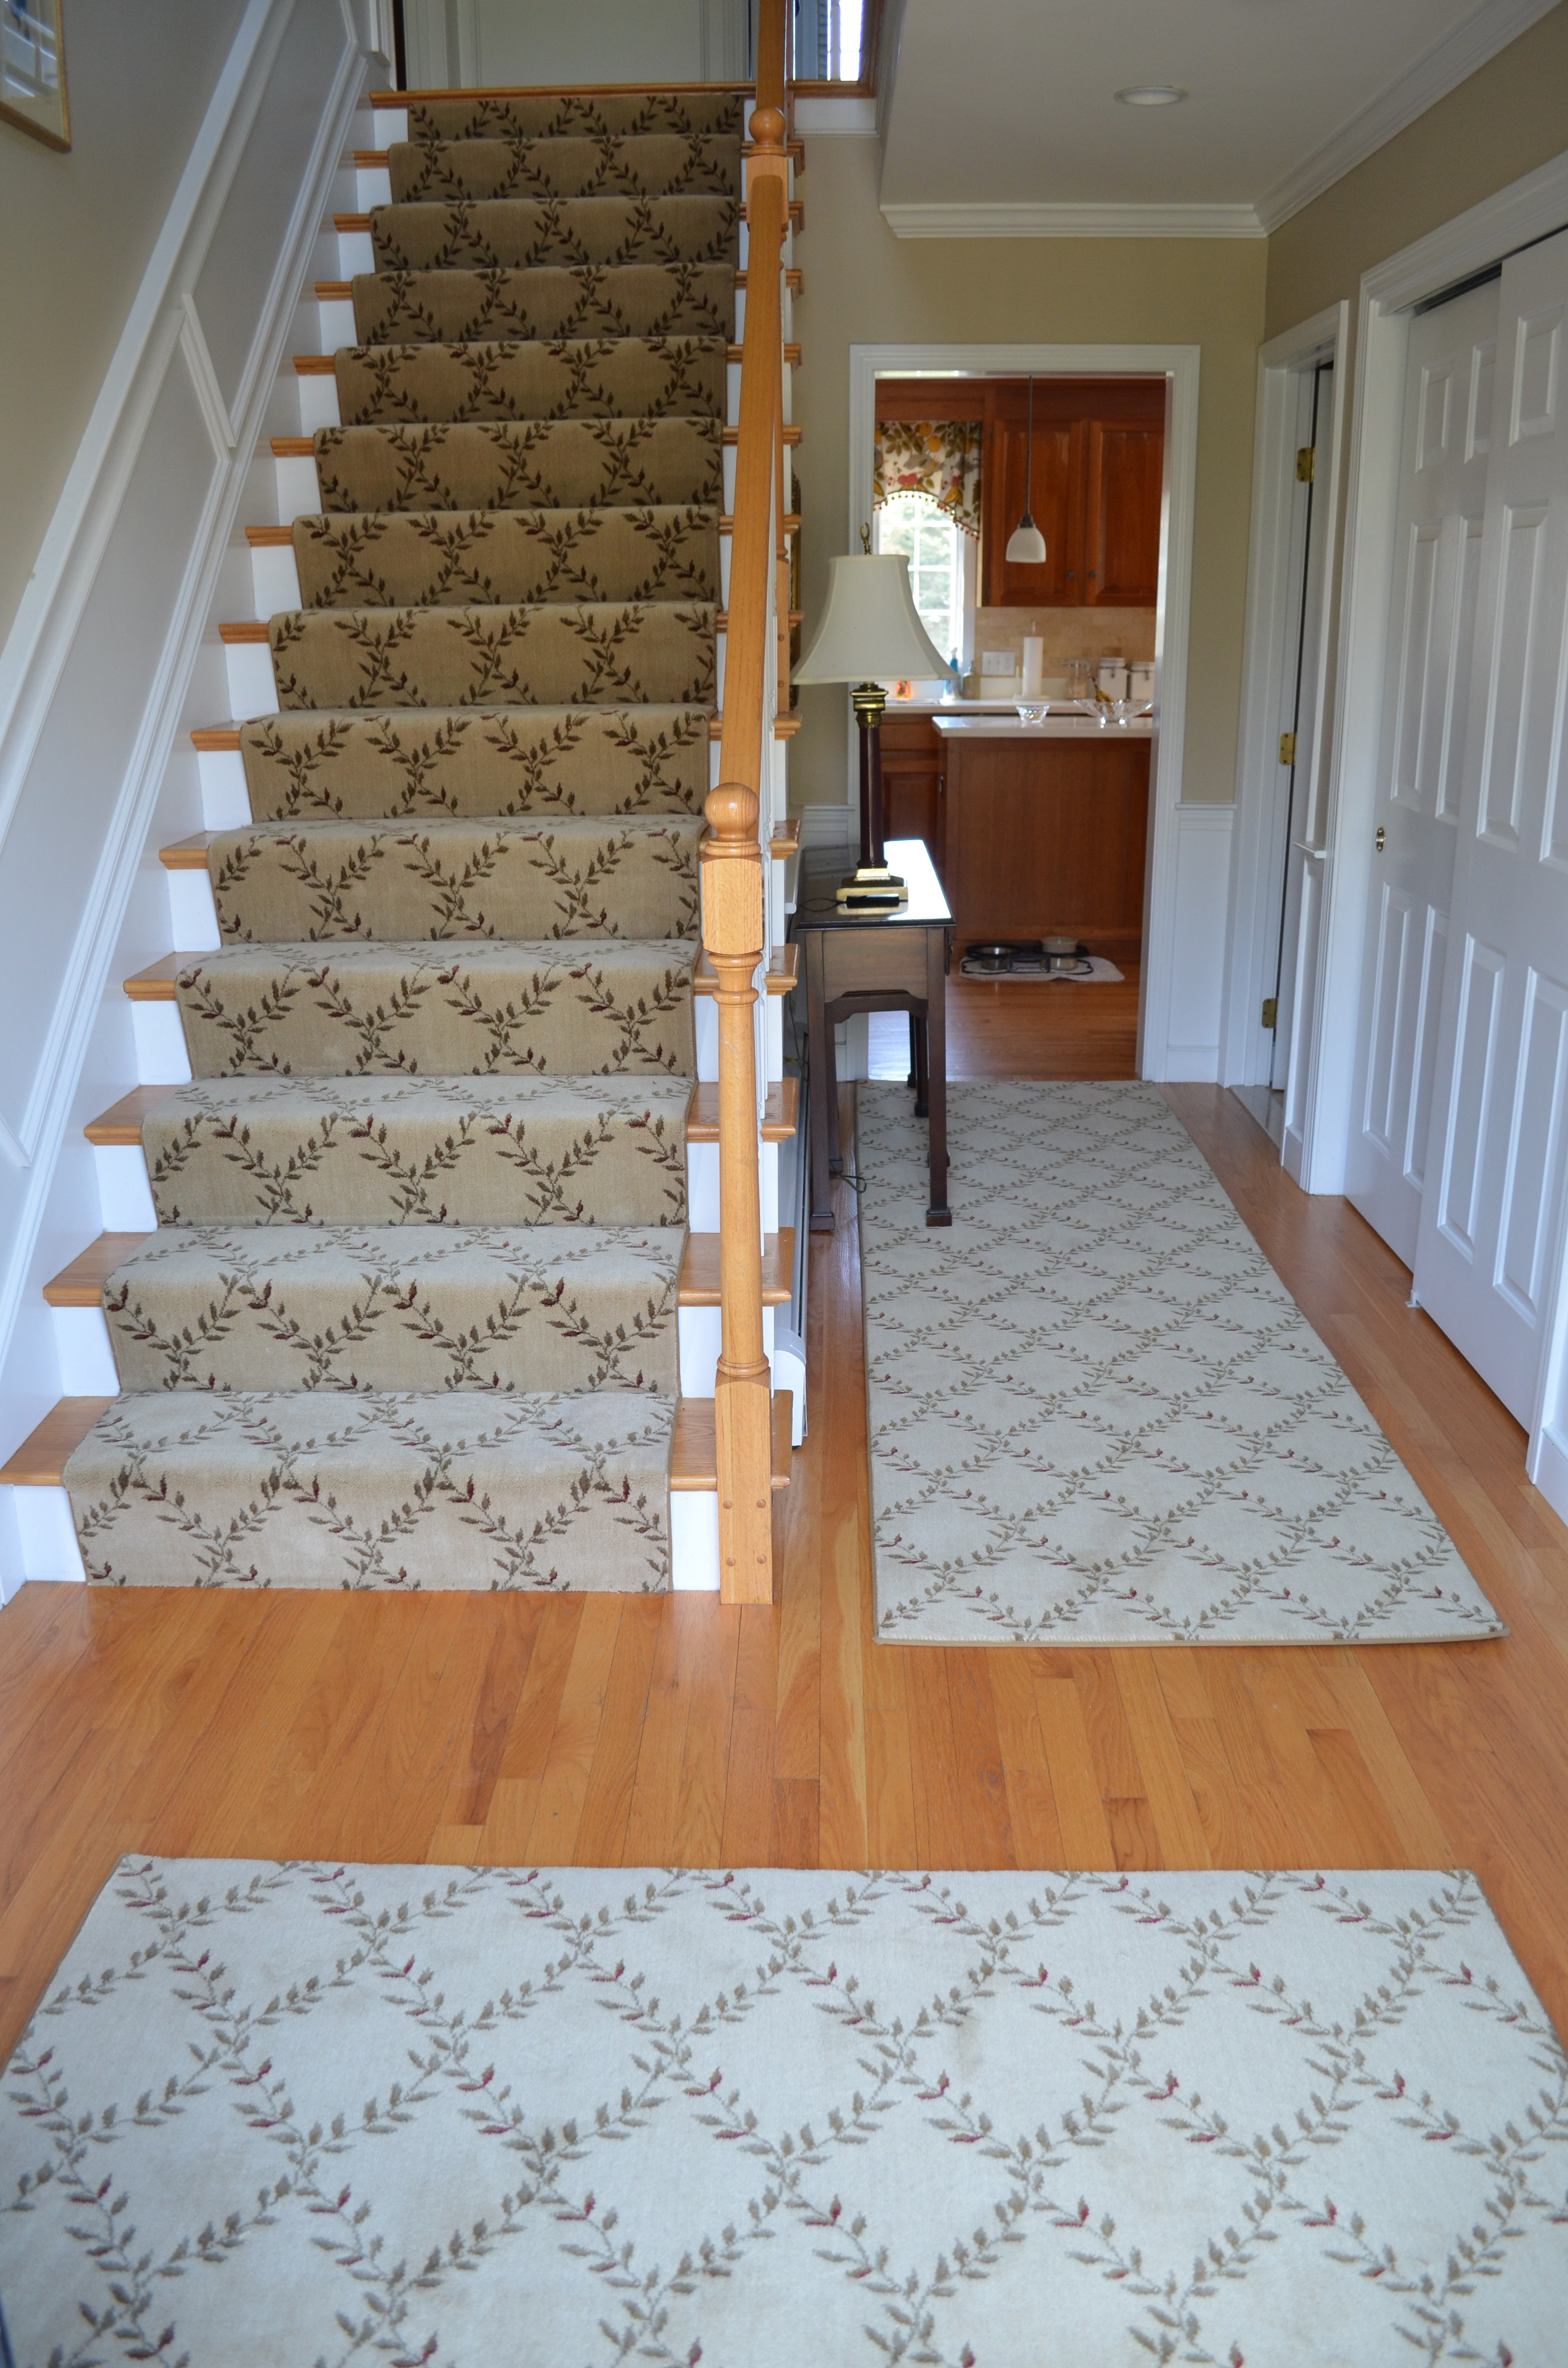 Interior Cream Carpet Hallway Combined With Gray And White Wall Pertaining To Rug Runners For Hallways (#16 of 20)